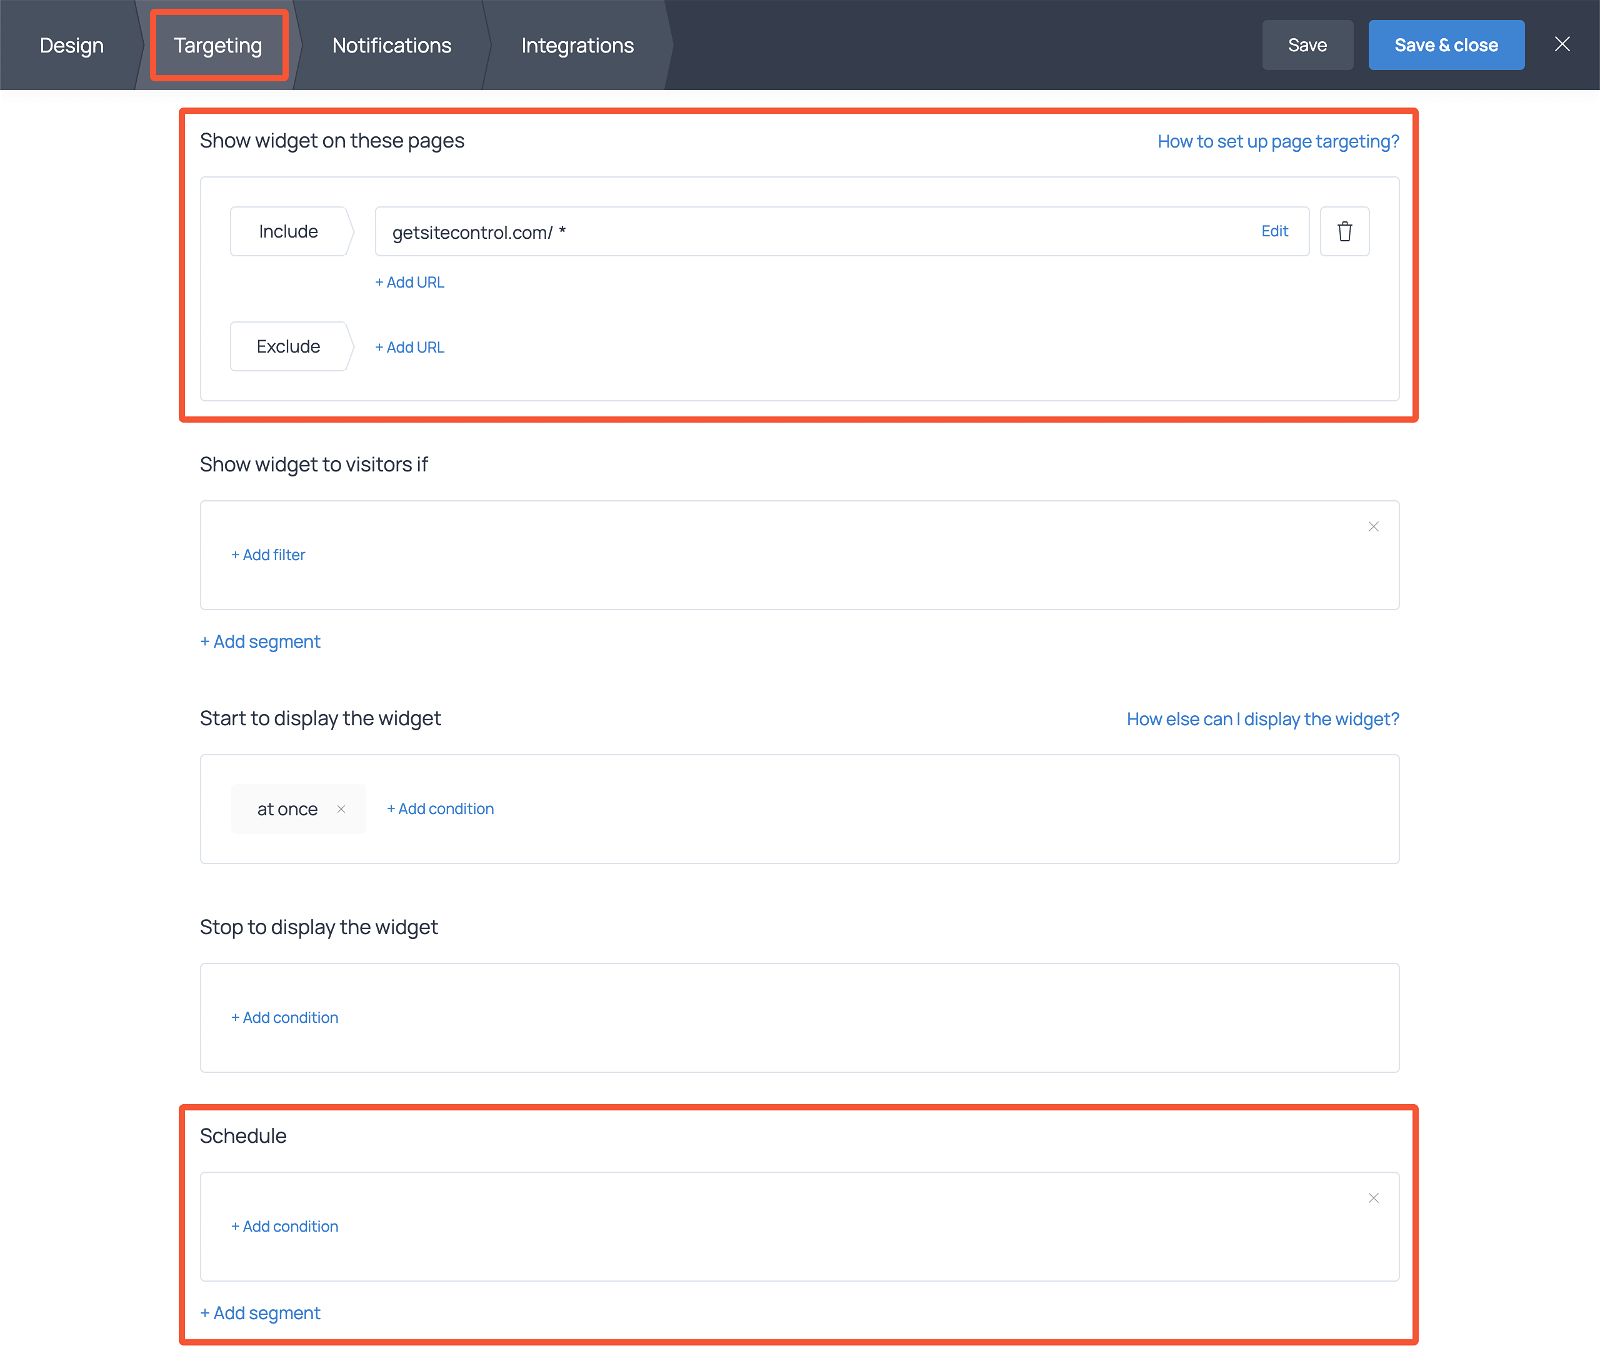 How to display service request form on selected pages